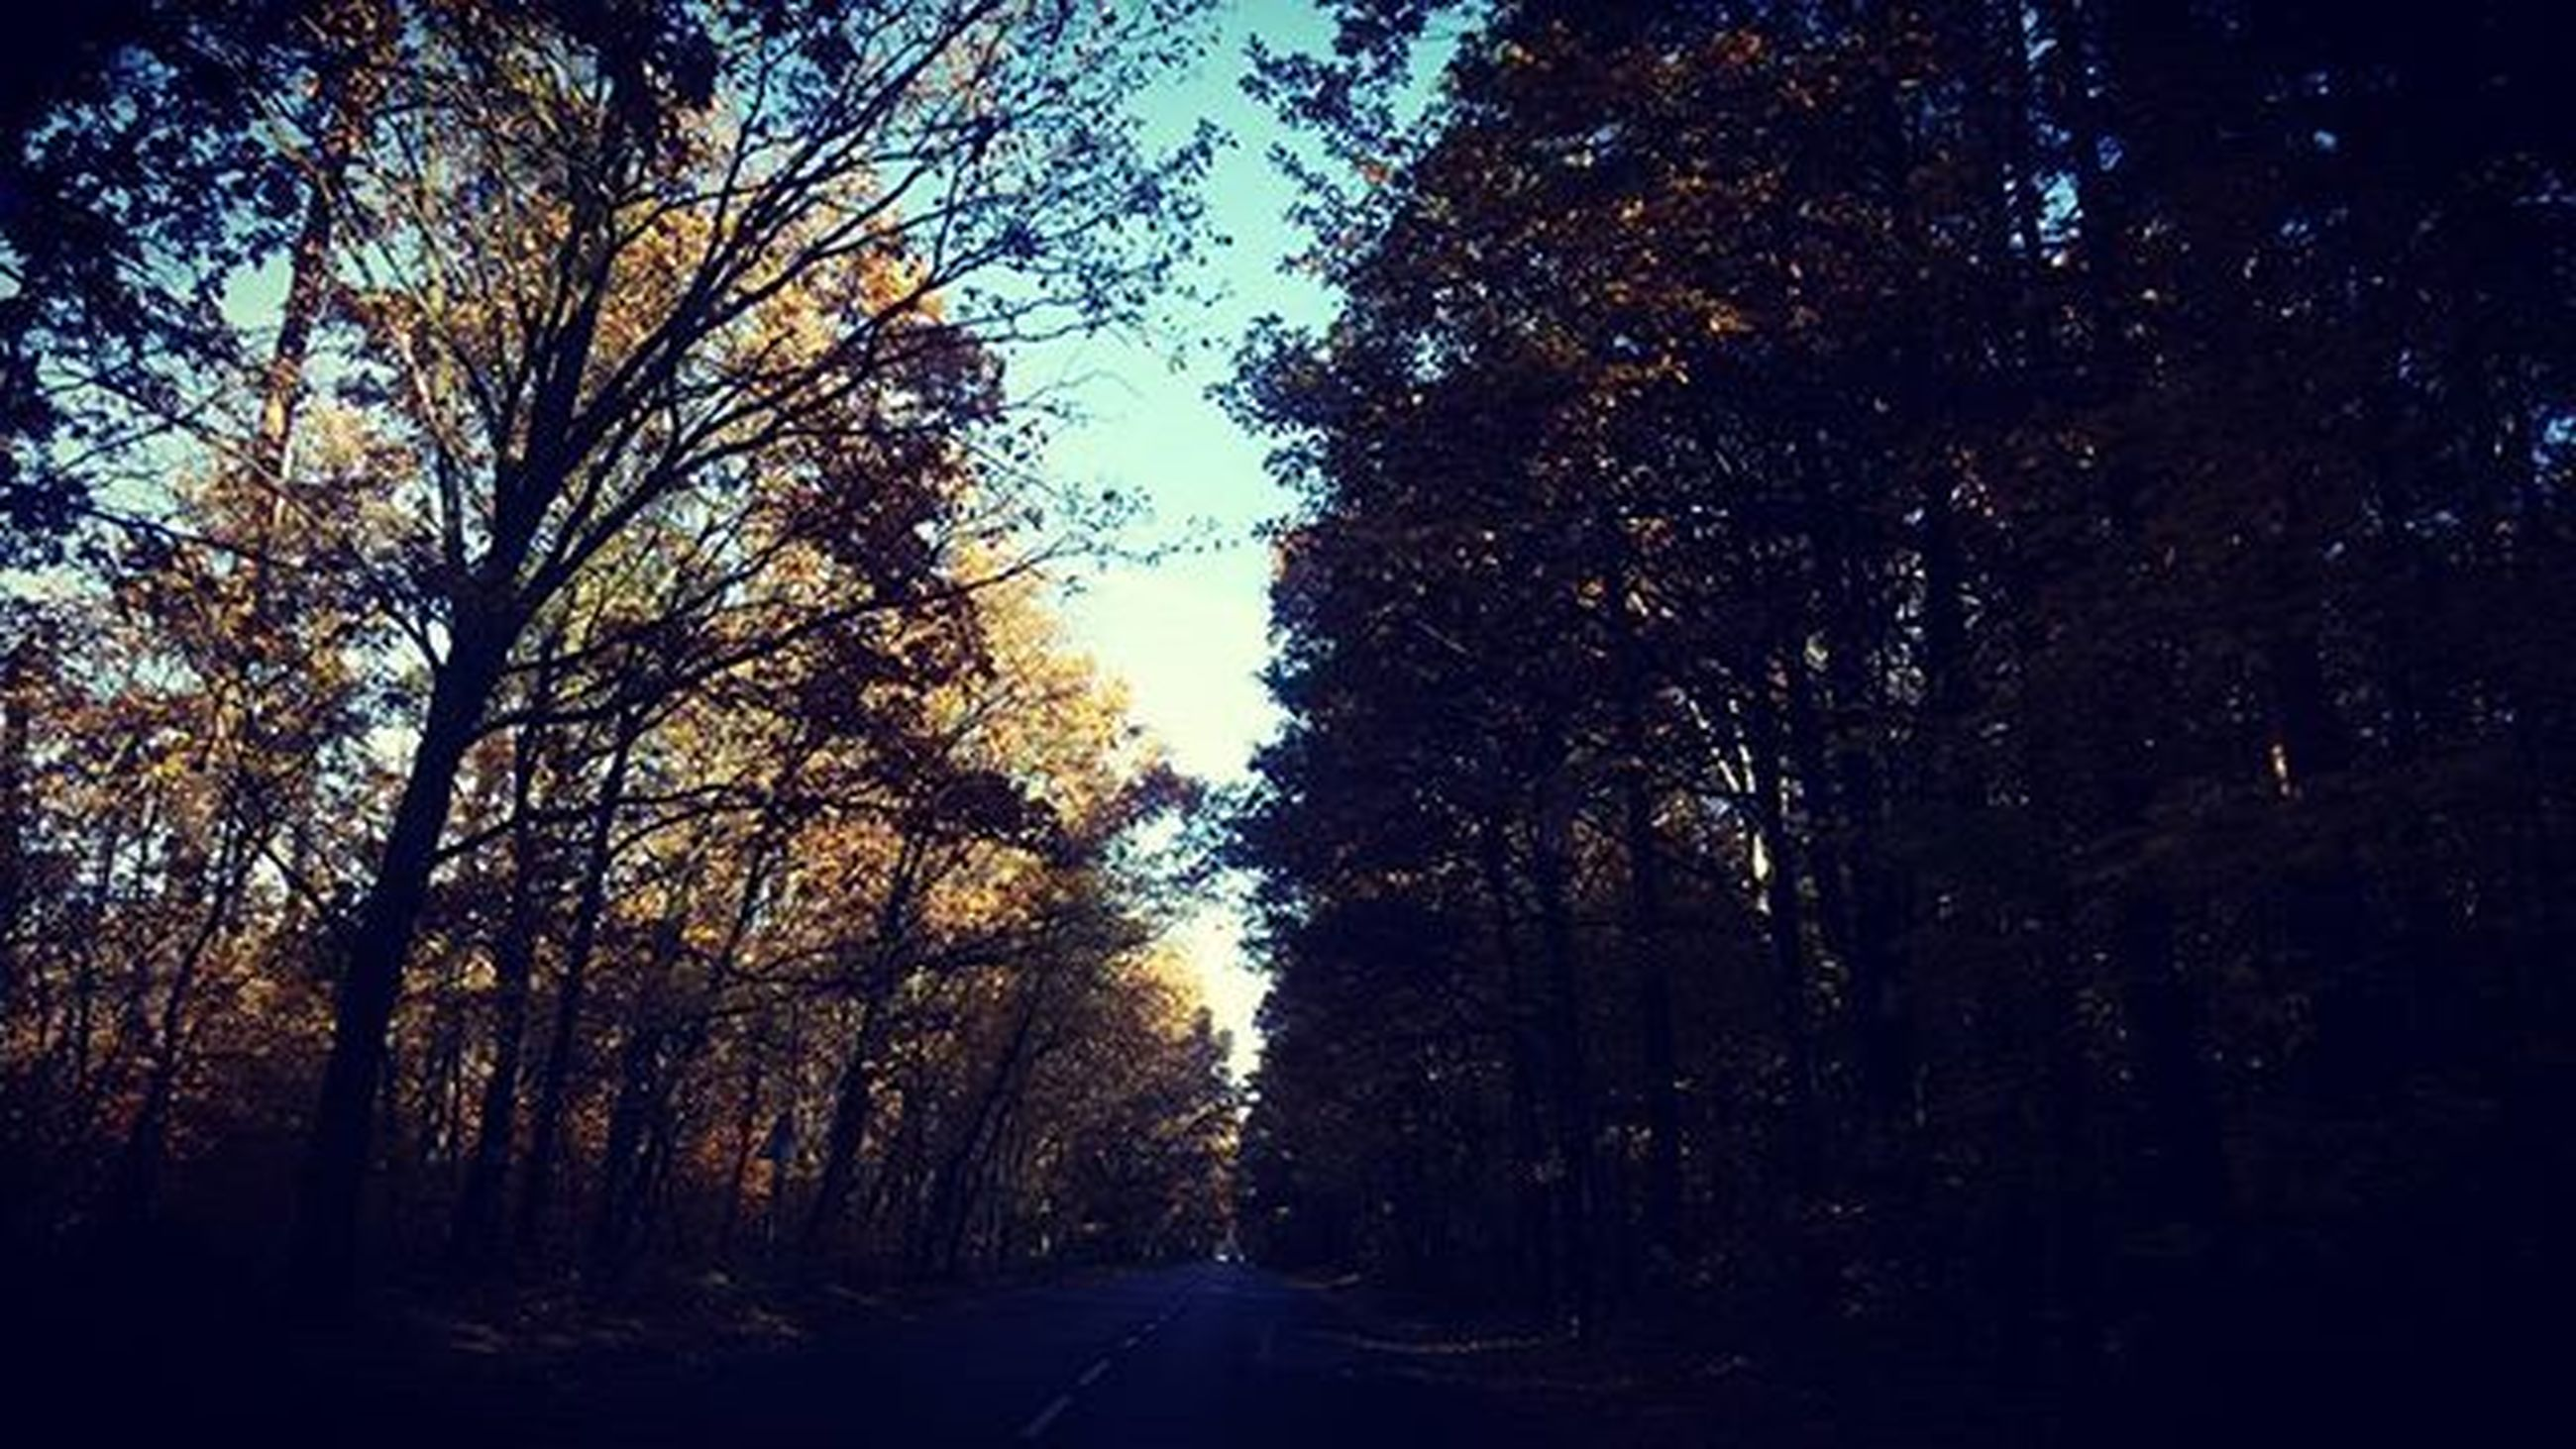 the way forward, tree, road, transportation, diminishing perspective, vanishing point, tranquility, street, nature, country road, empty road, treelined, tranquil scene, sky, growth, beauty in nature, forest, outdoors, scenics, branch